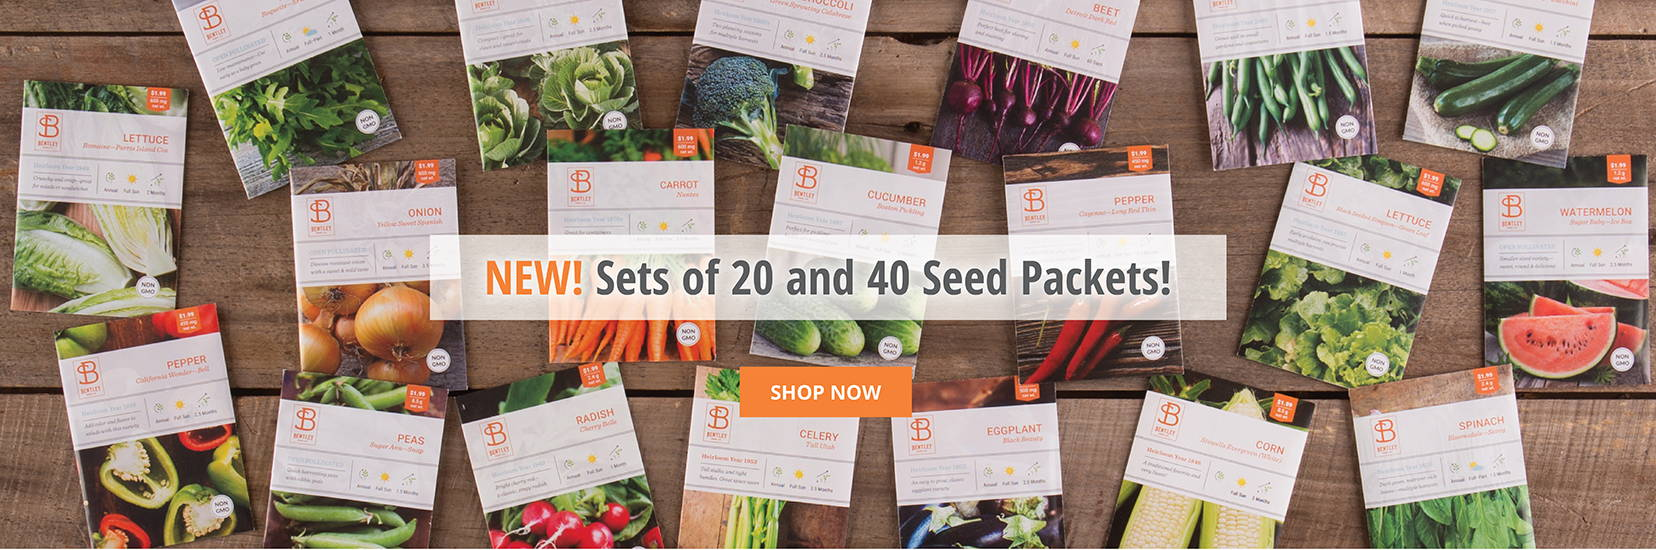 NEW! Sets of 2- and 40 Seed Packets!